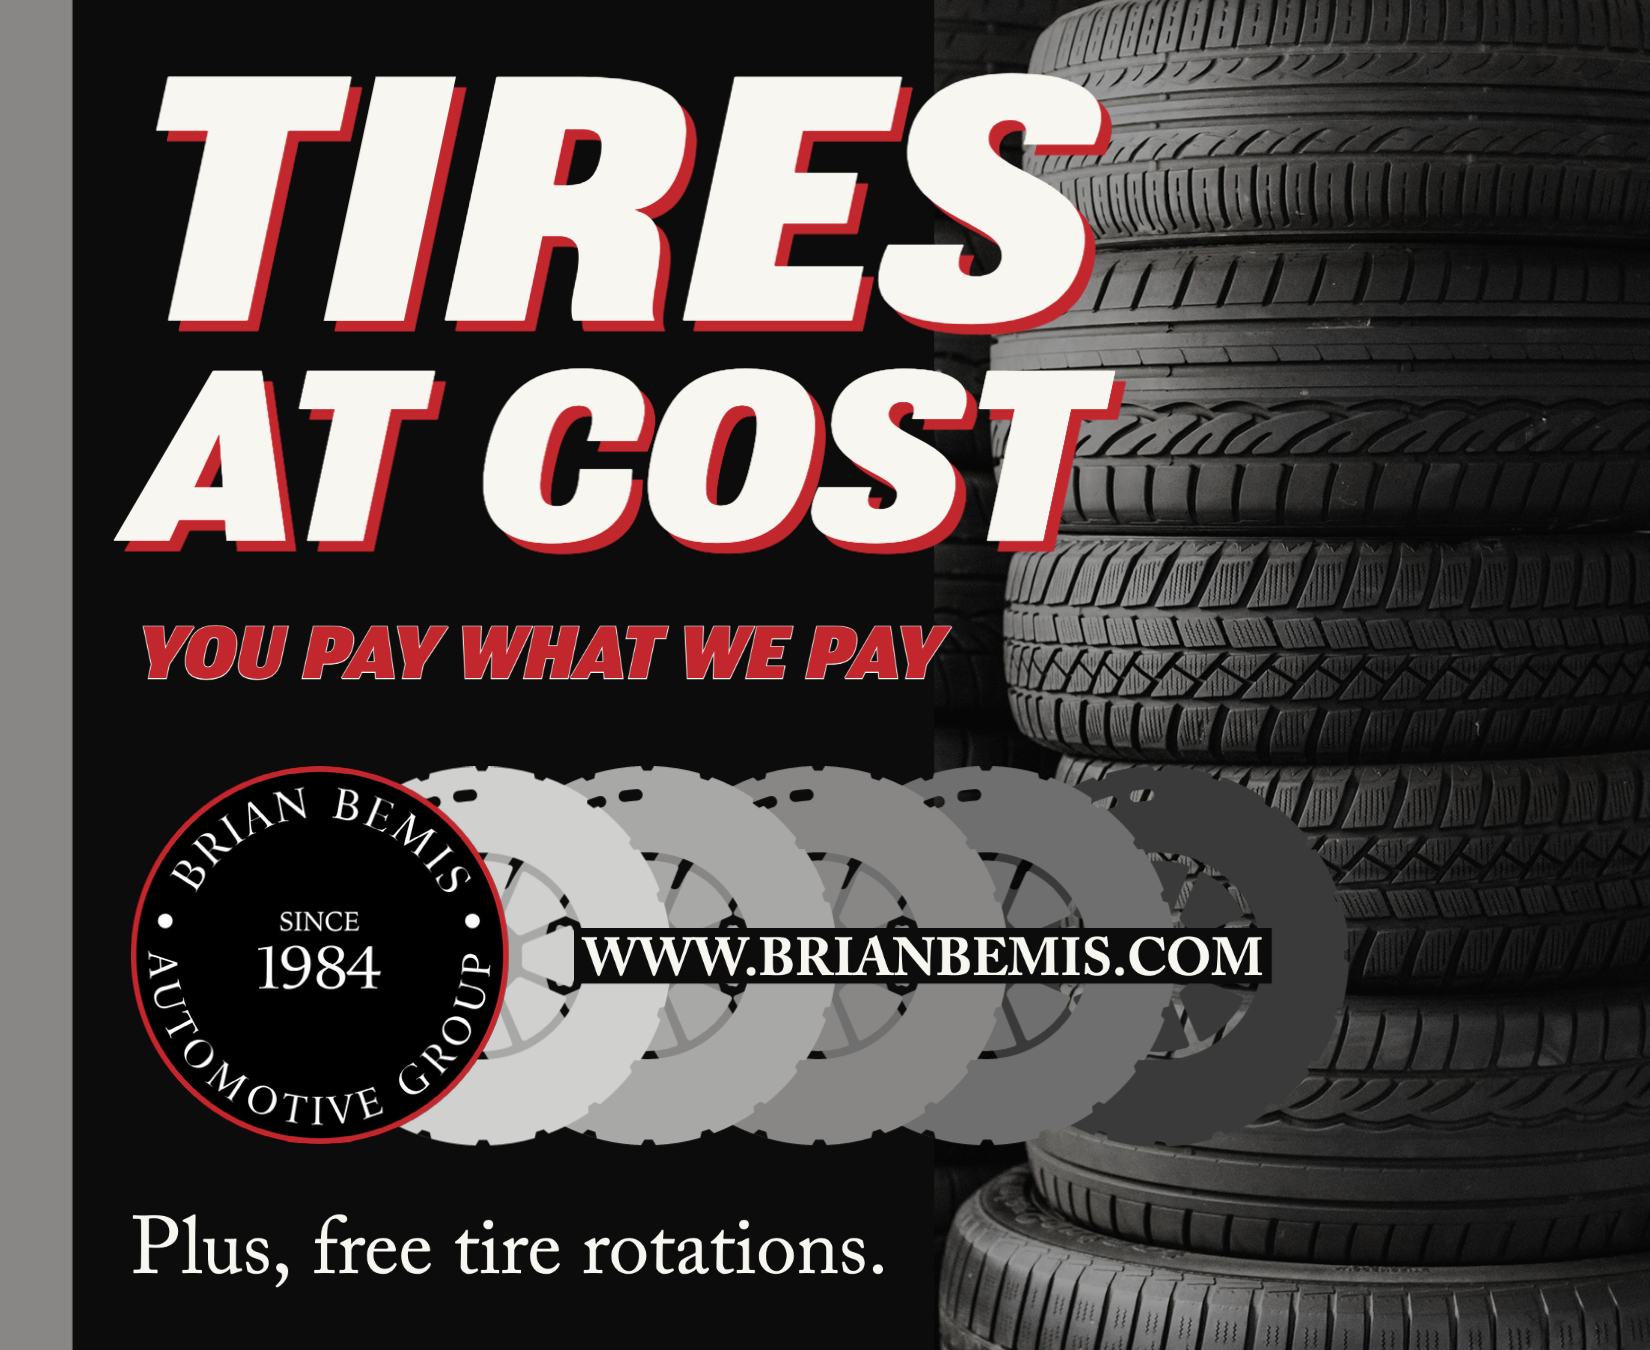 Tires at Cost in Sycamore, IL You Pay What We Pay